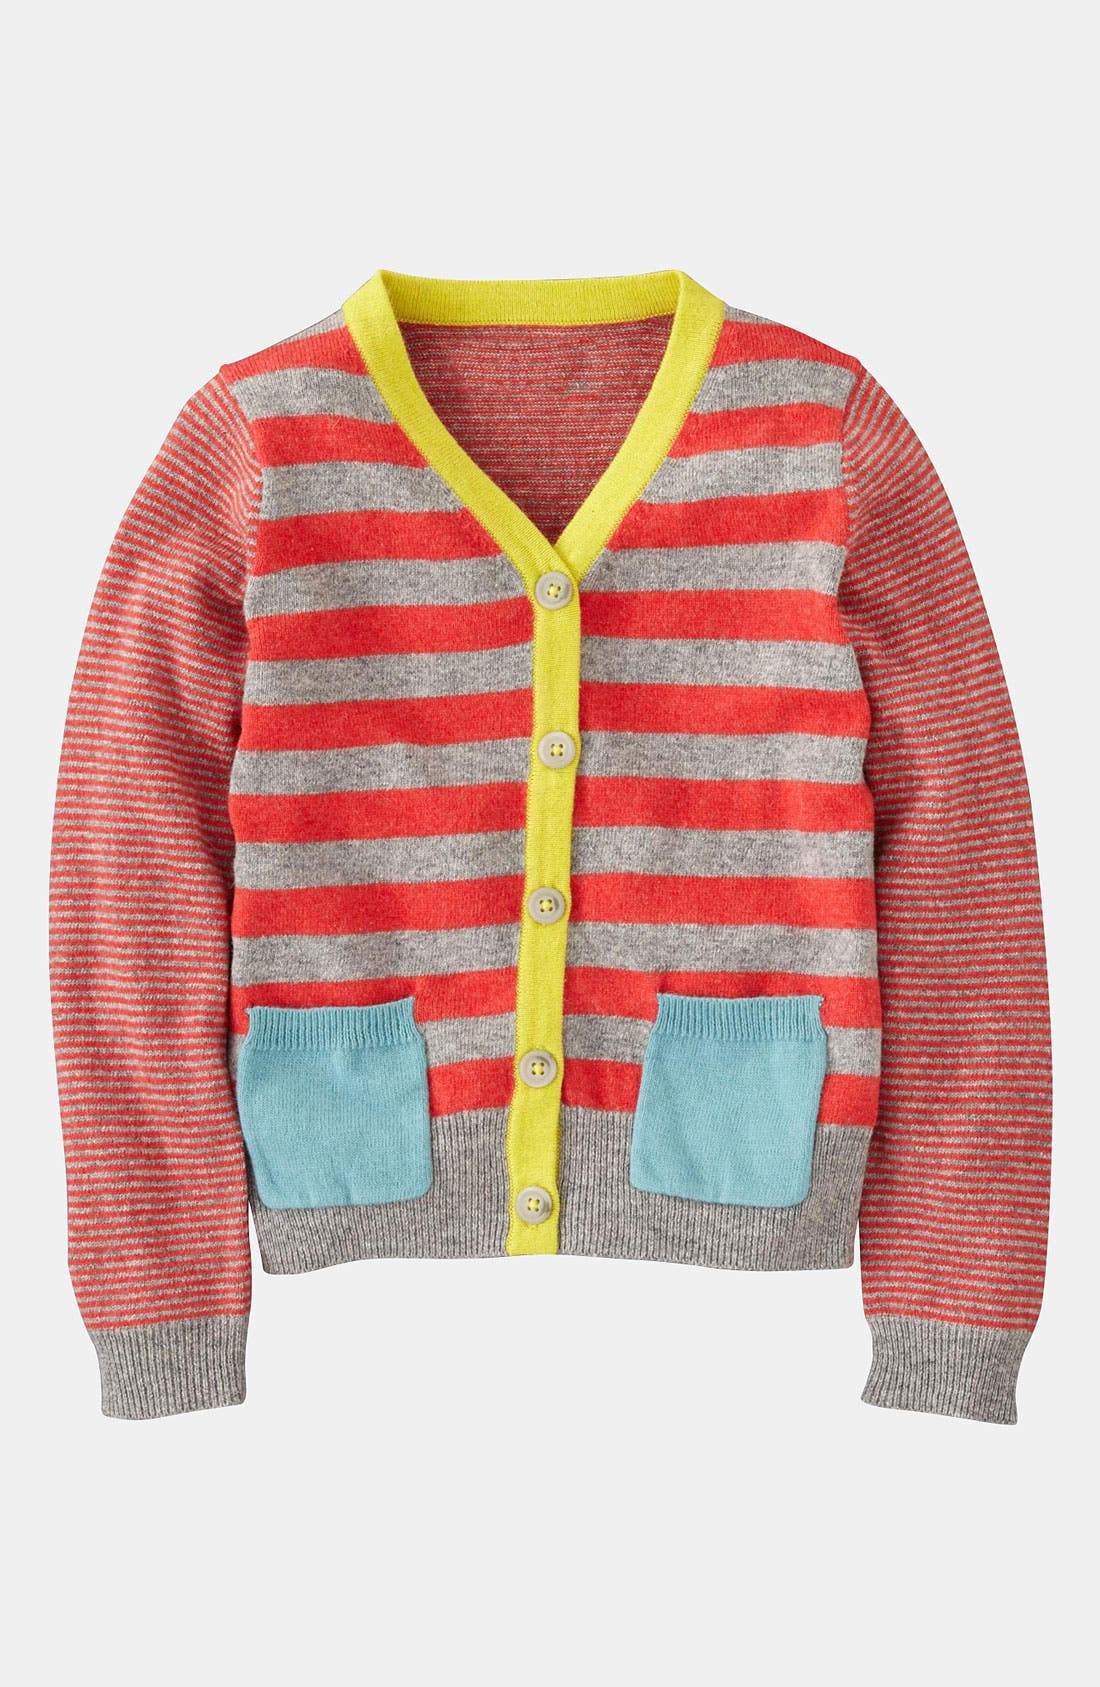 Main Image - Mini Boden 'Hotchpotch' Cardigan (Little Girls & Big Girls)